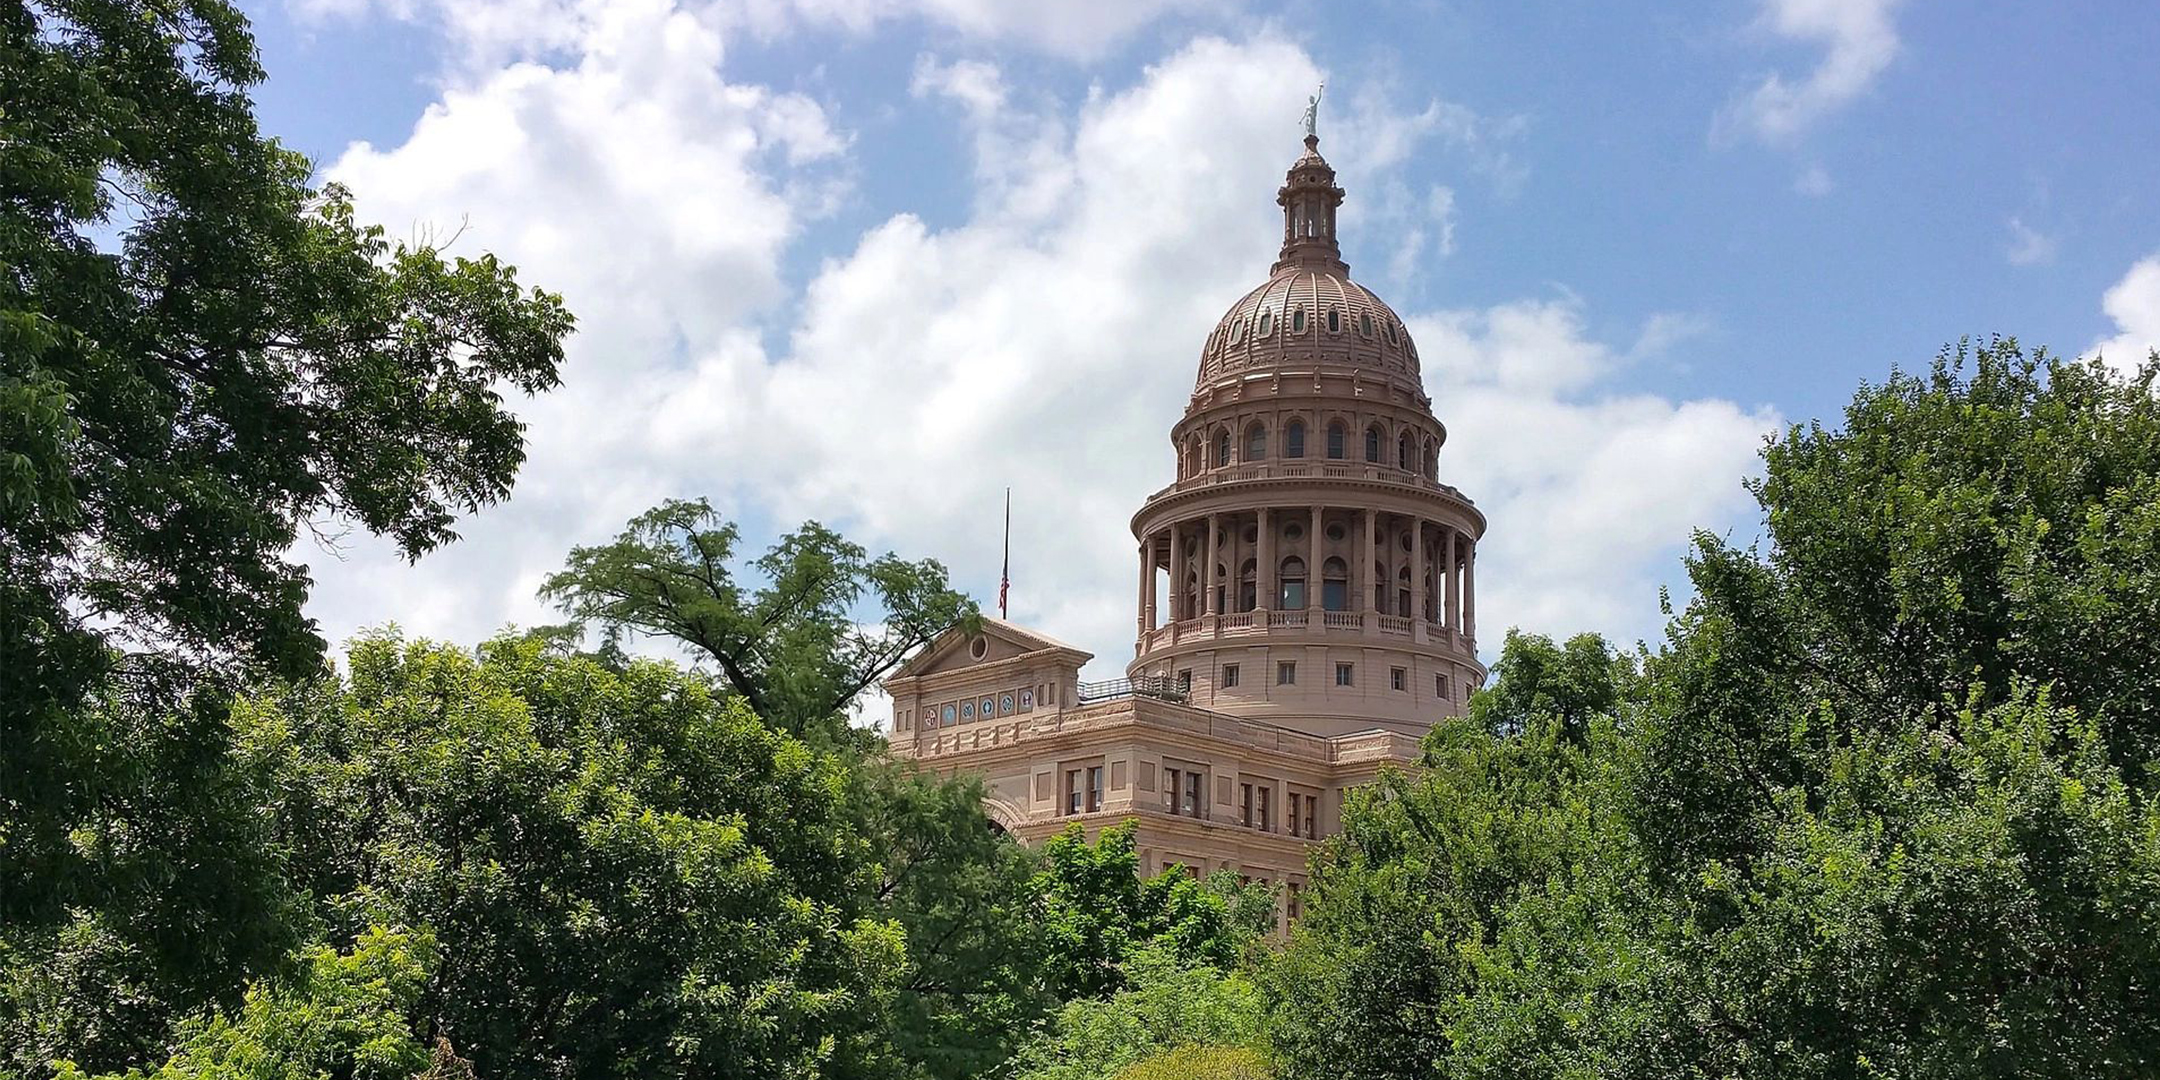 This is a picture of the State Capital in Austin, TX.